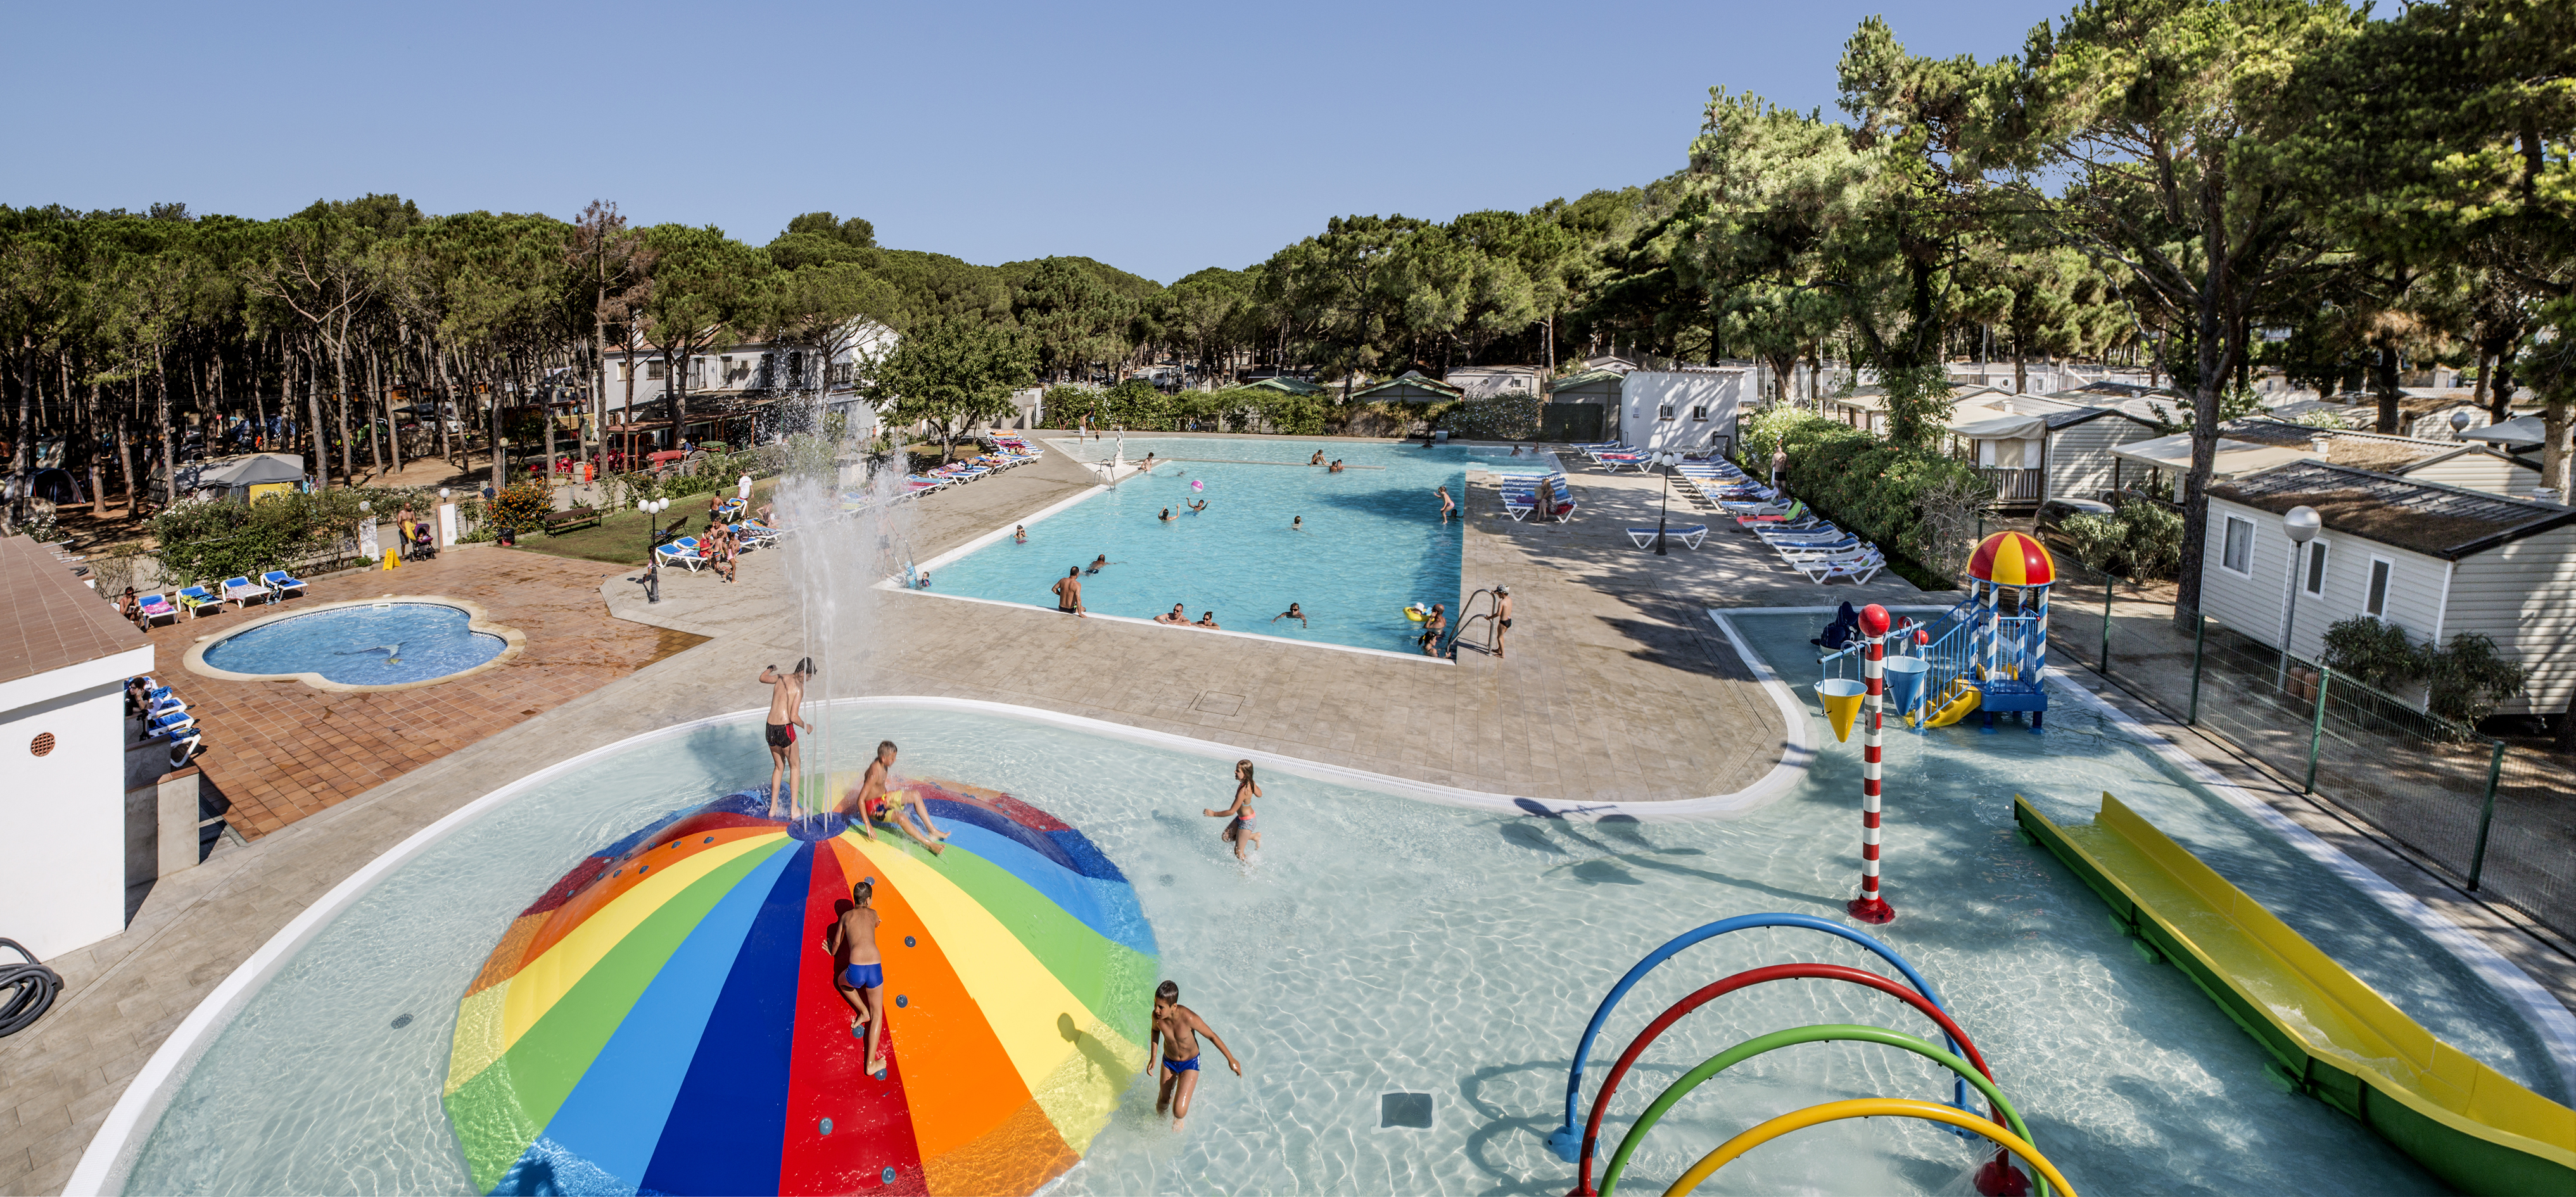 Camping espagne disponible aout